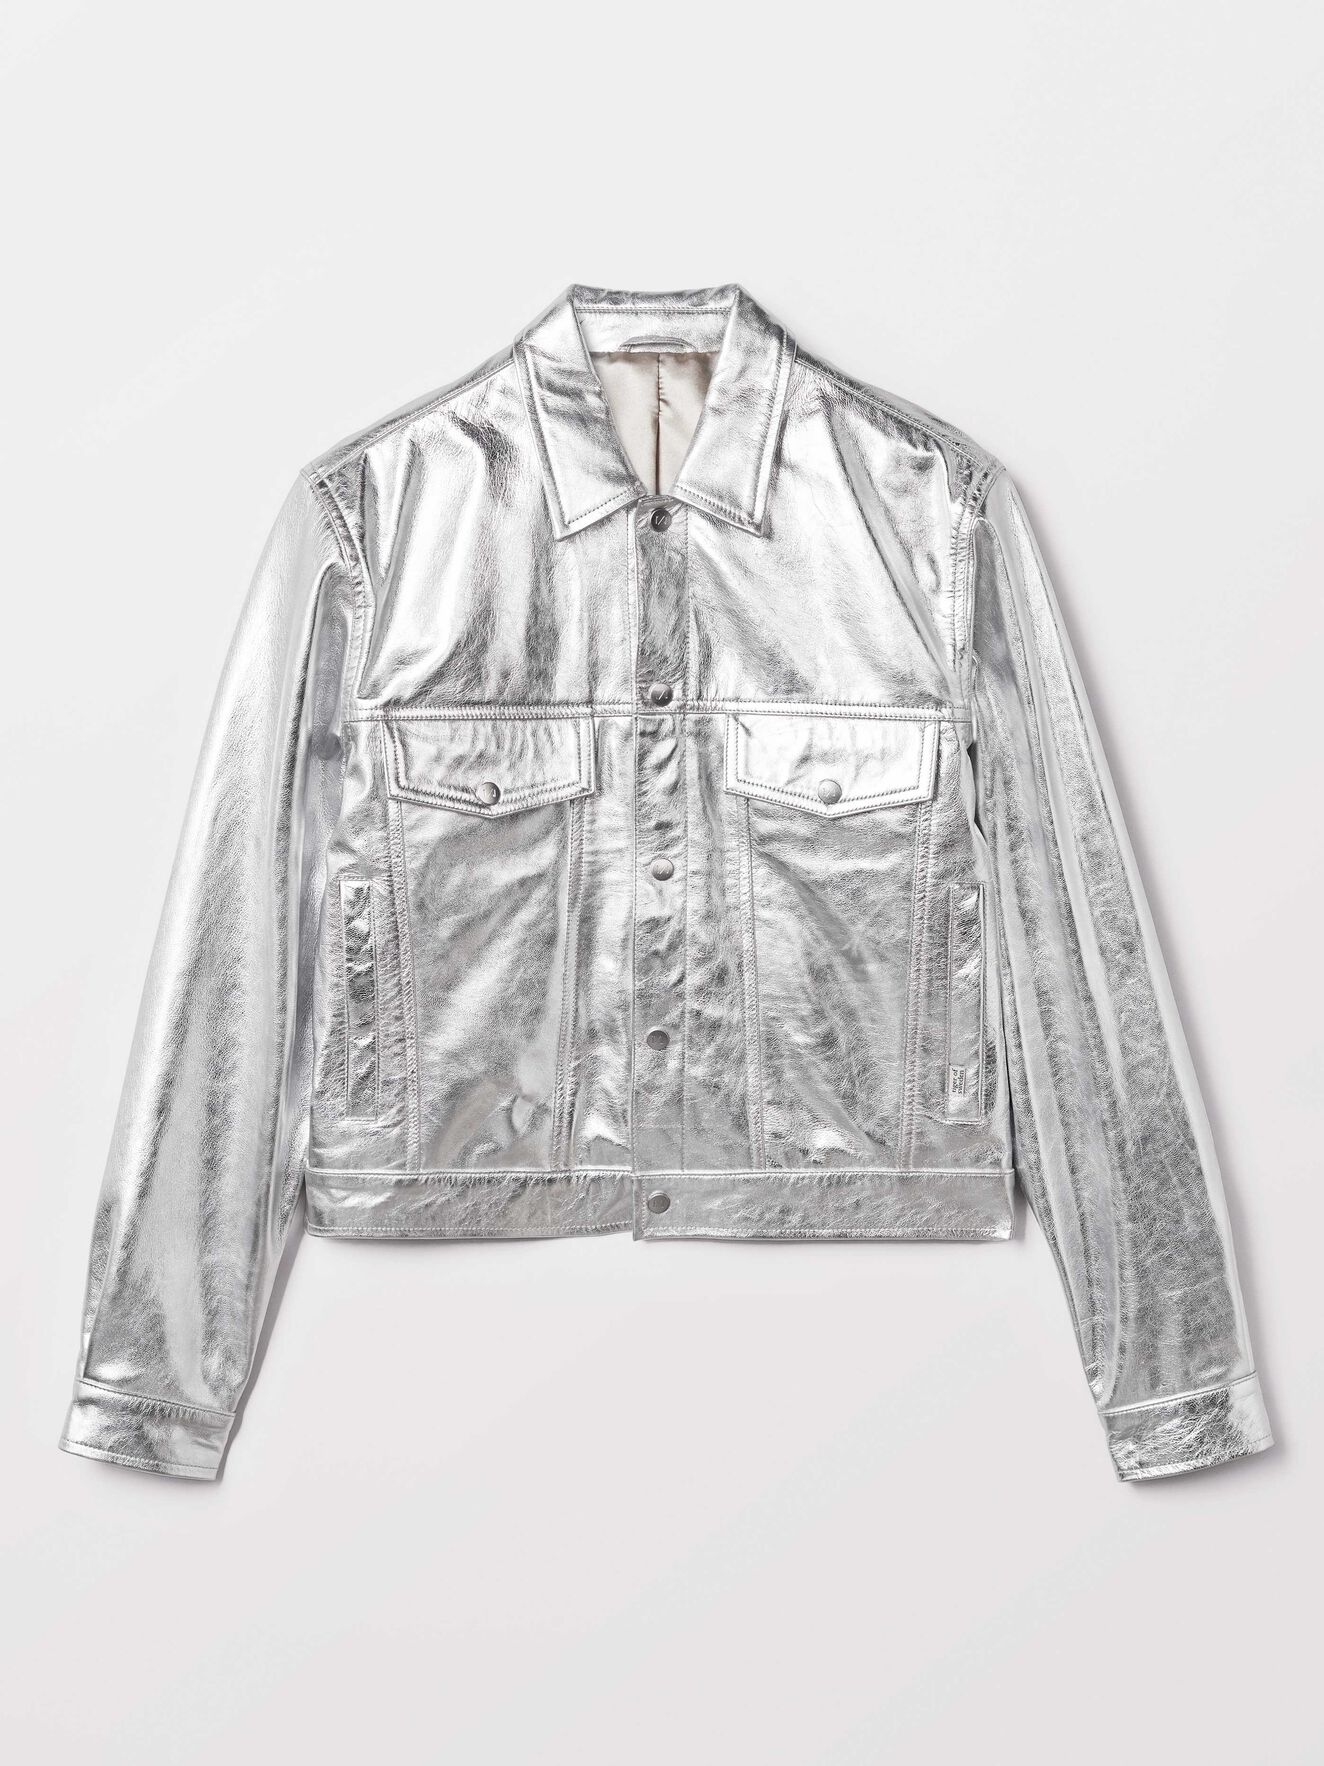 Lanzon M Jacket in Mercury Grey from Tiger of Sweden